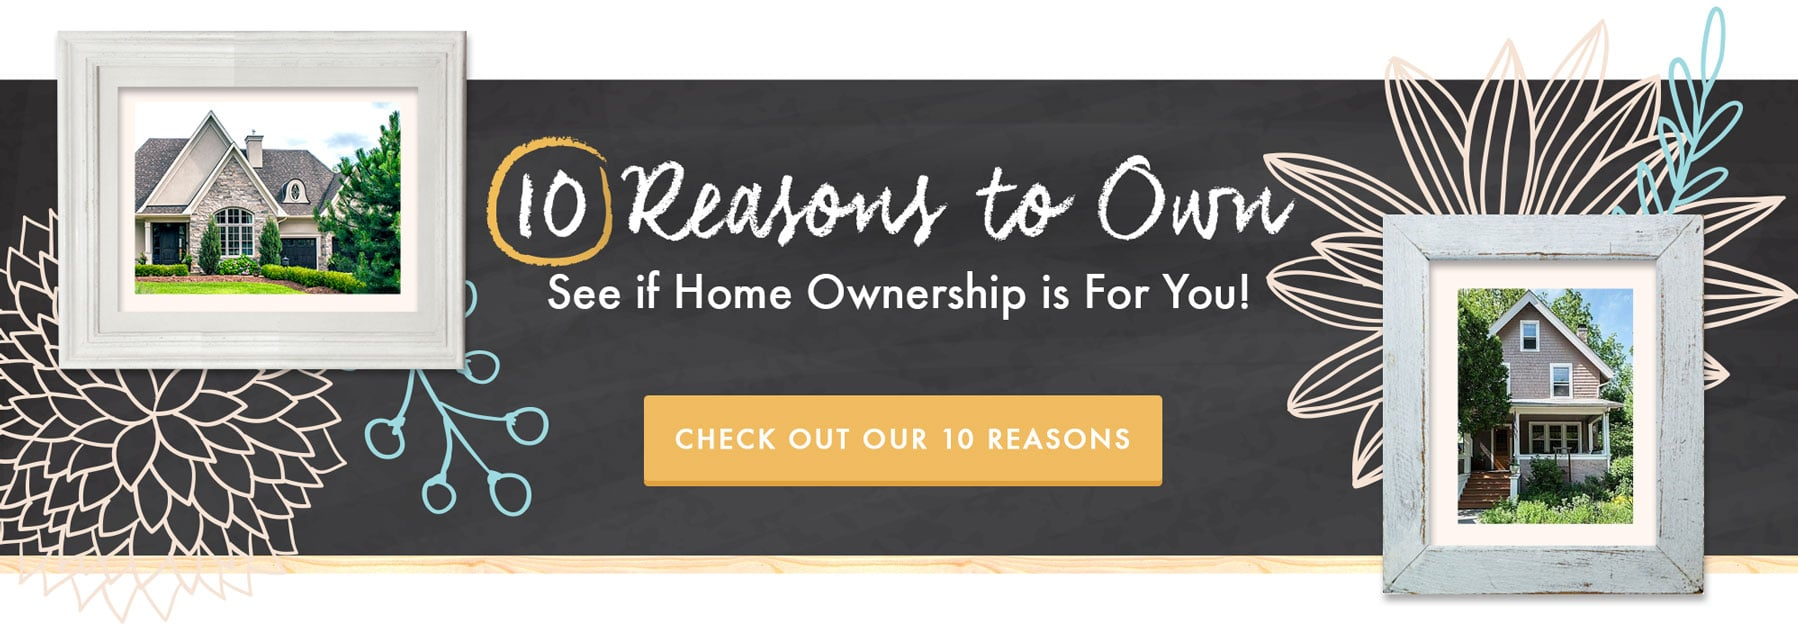 10 Reasons to Own a Home